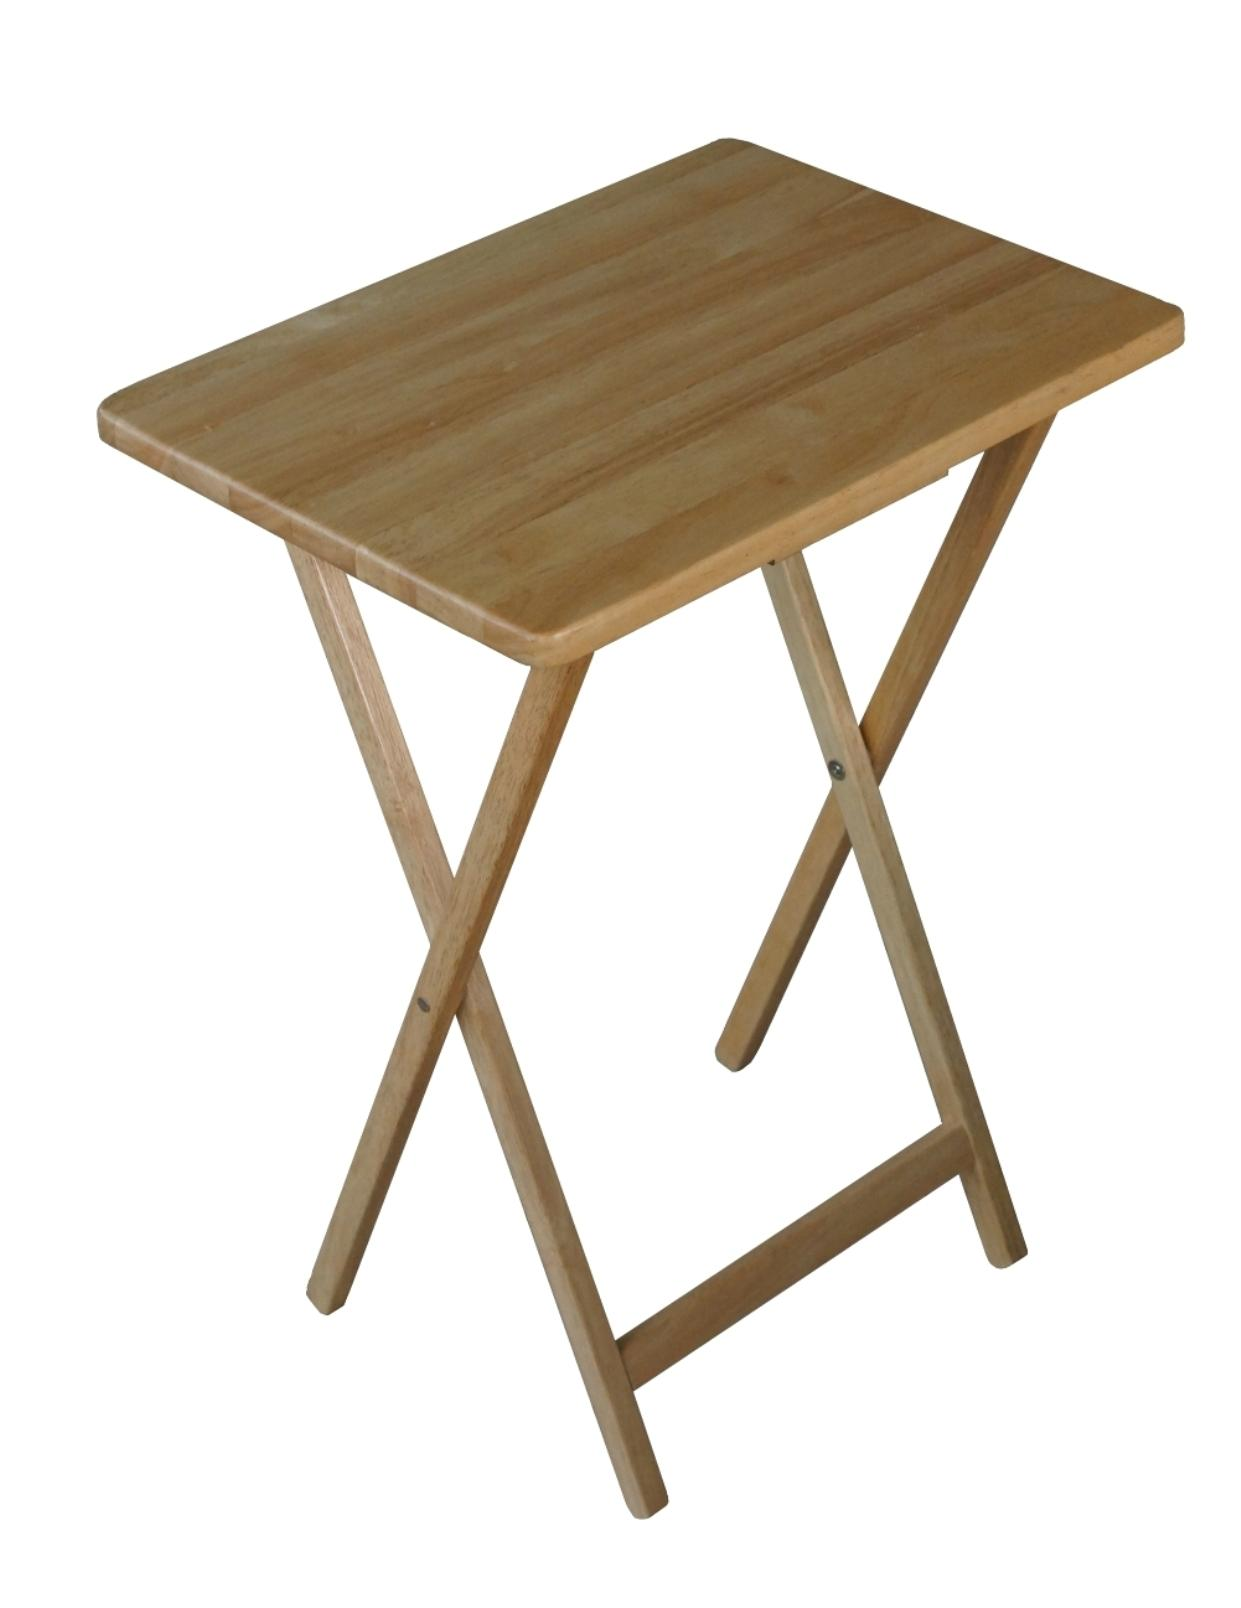 folding wooden tv tray table - natural eduuhbh